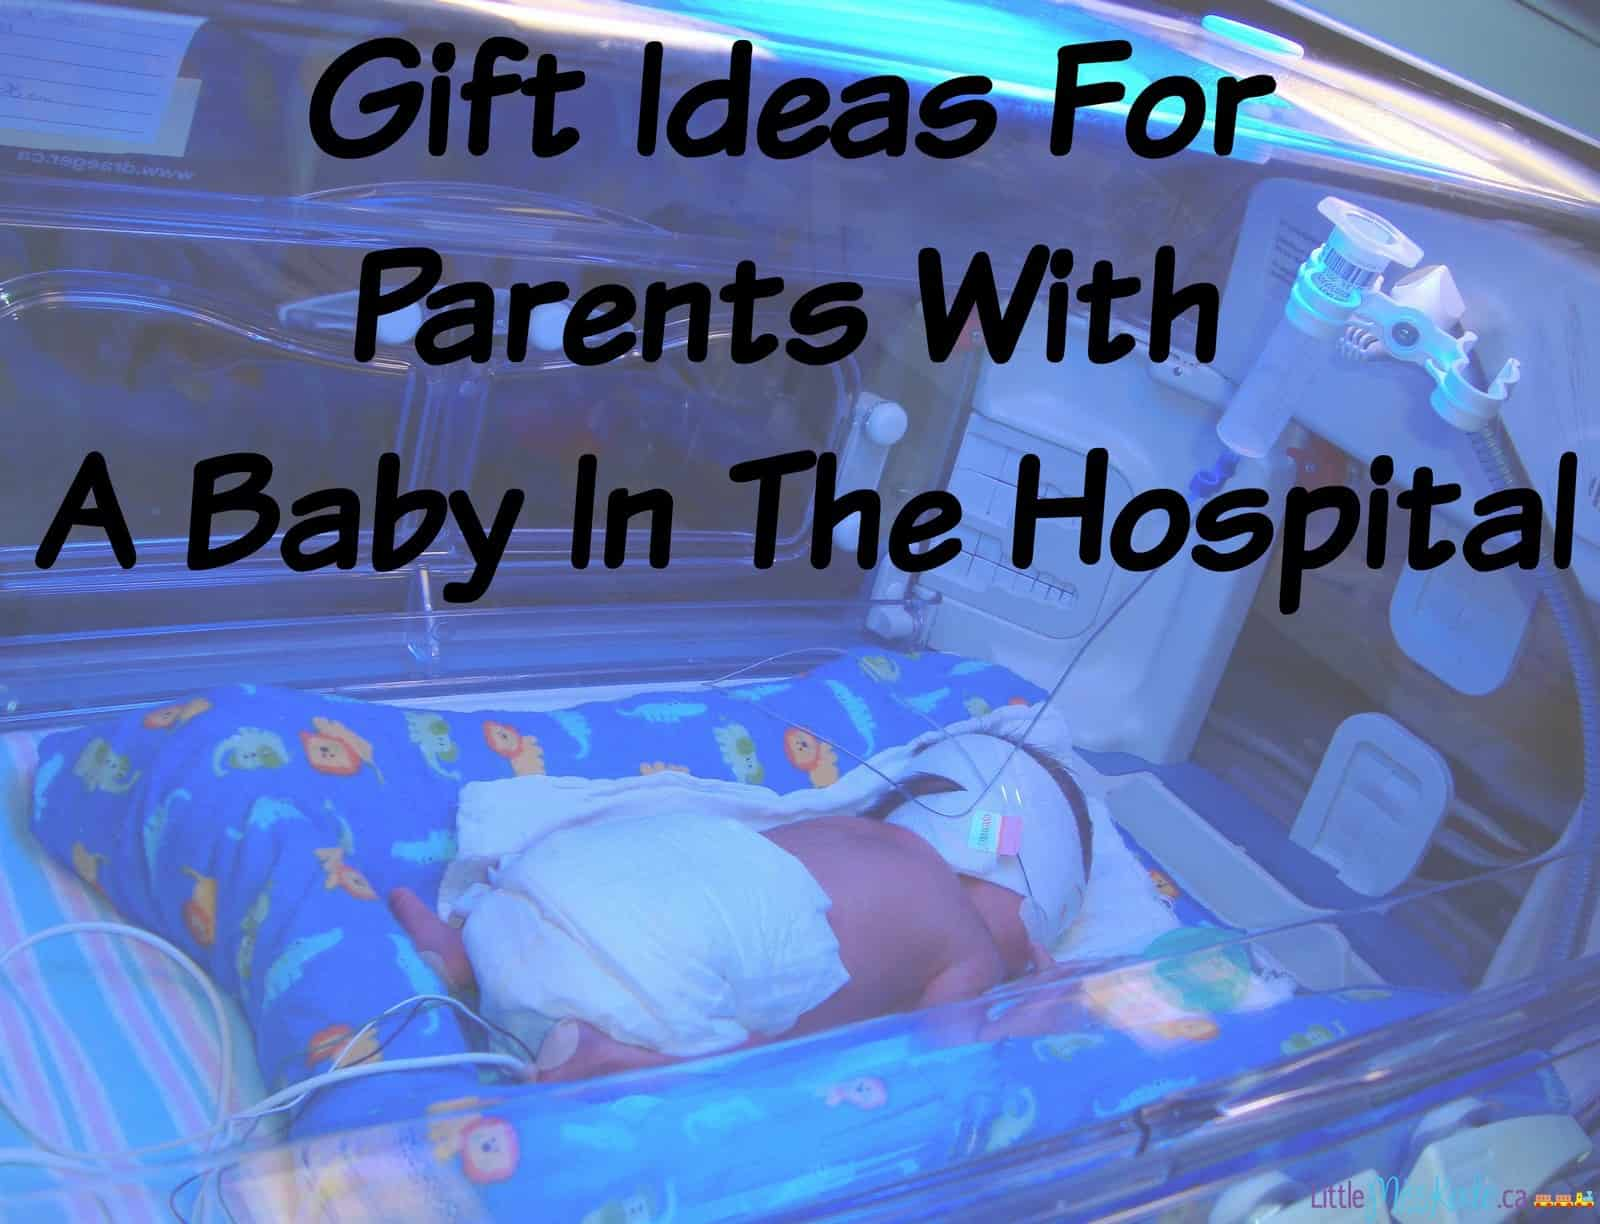 gift-ideas-for-parents-with-baby-in-the-hospital-NICU-3